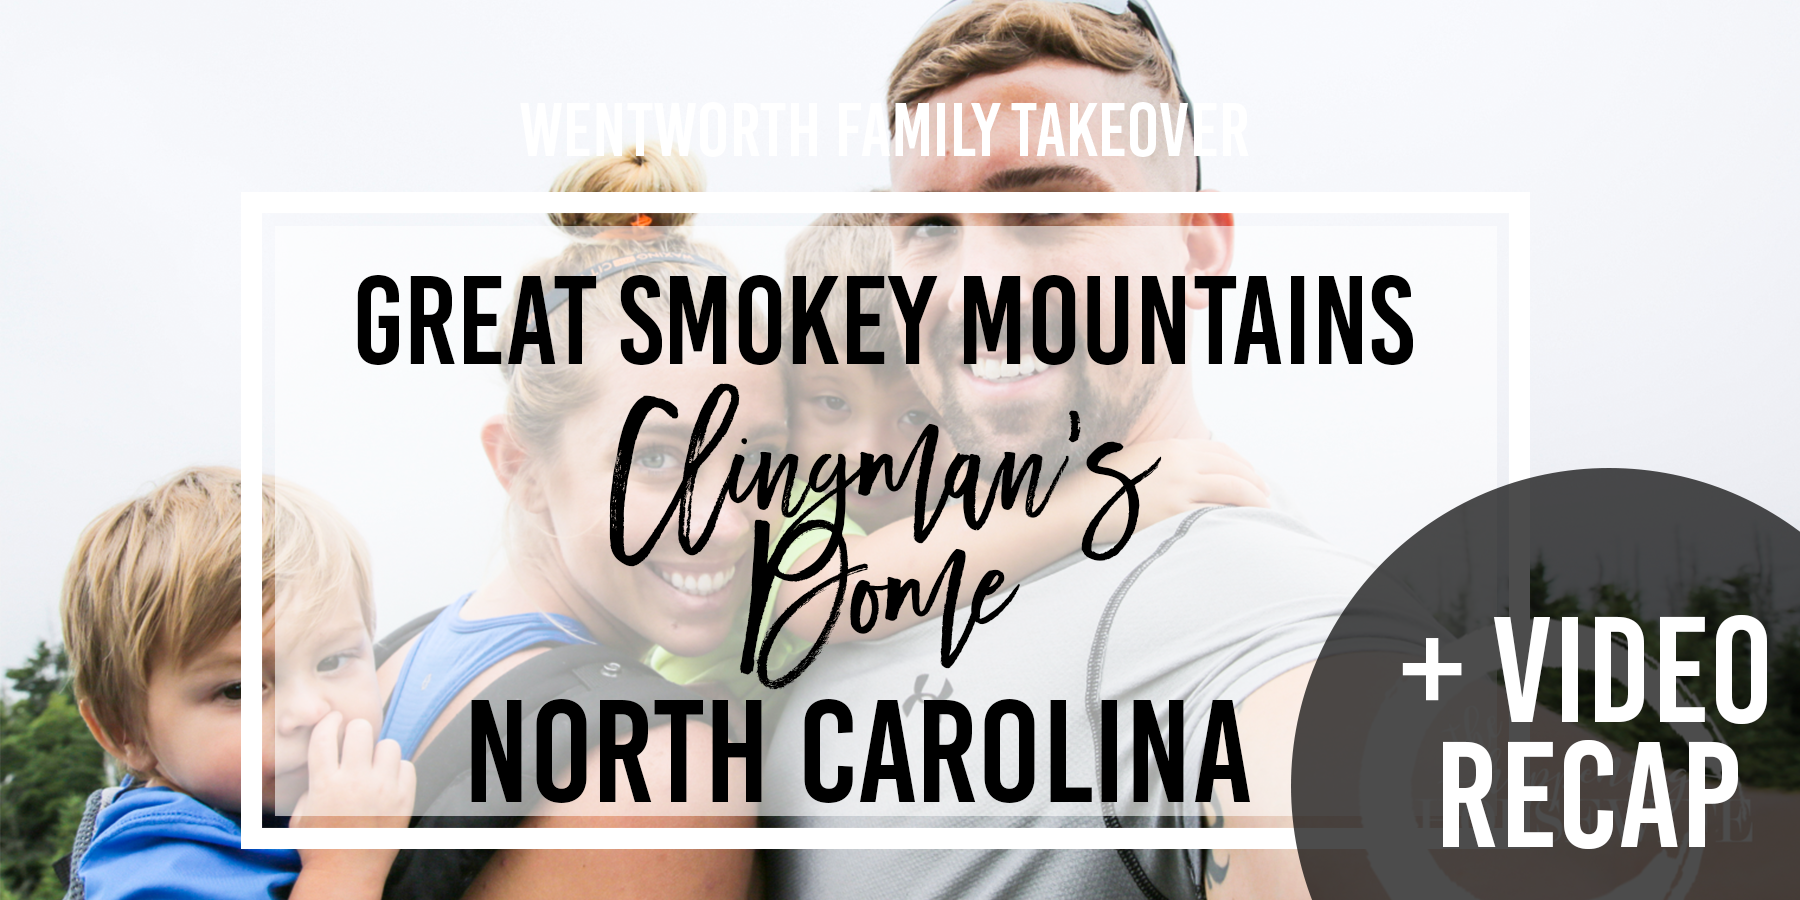 WENTWORTH FAMILY TAKEOVER | Great Smokey Mnts. Summer 2016 Re-cap!